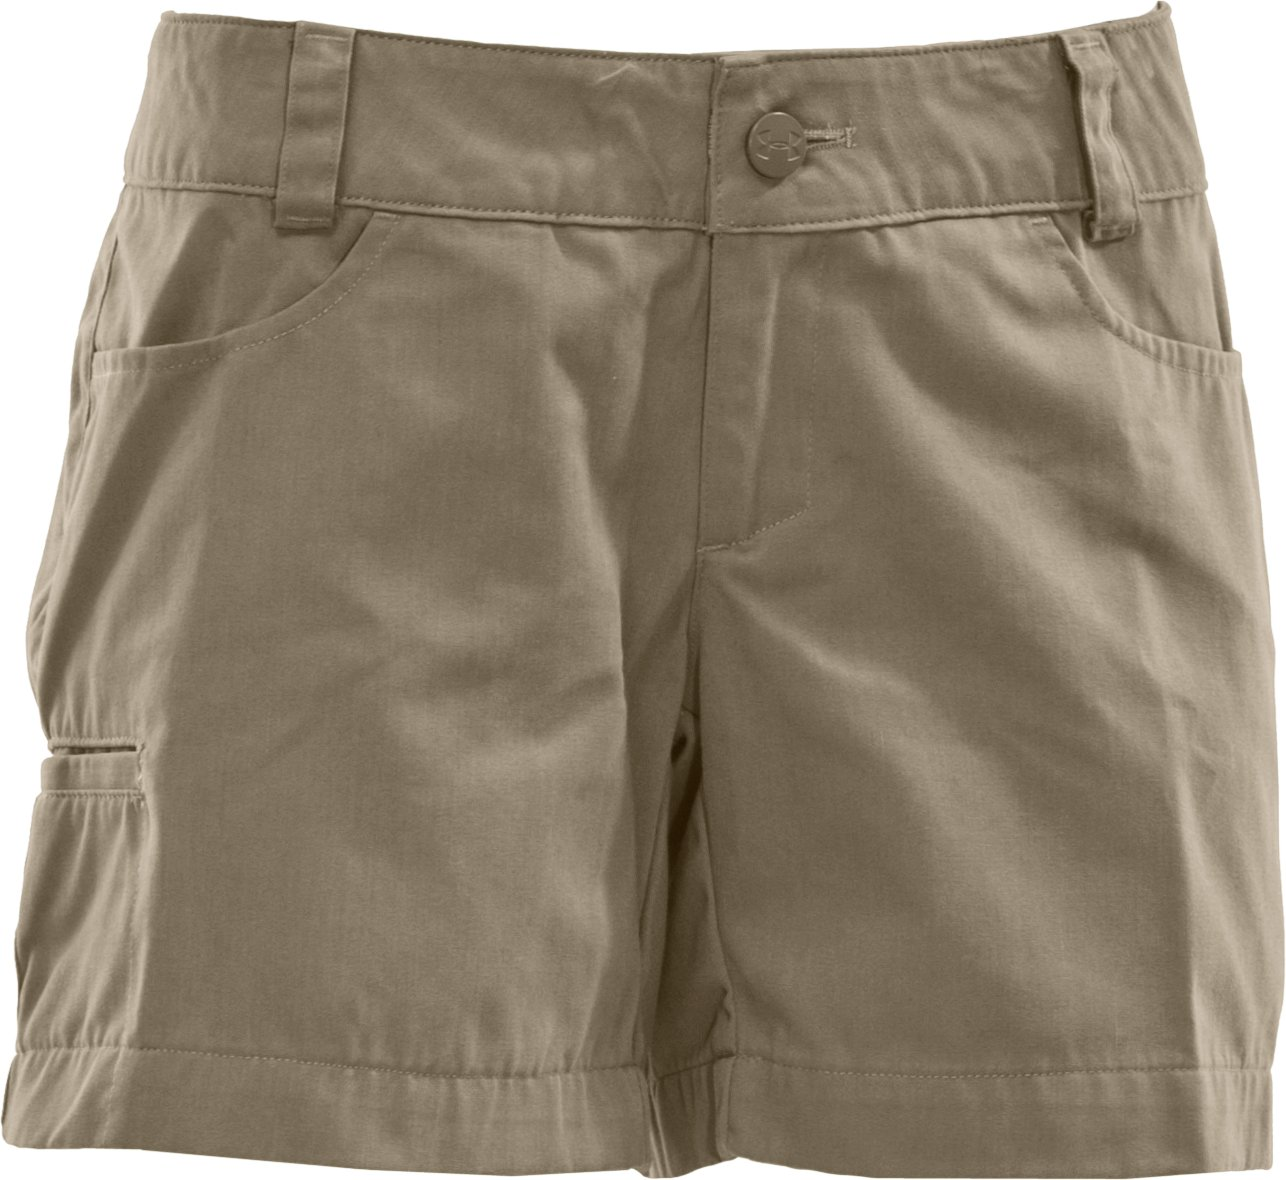 "Women's Calvert 5"" Hiking Short, Dune"